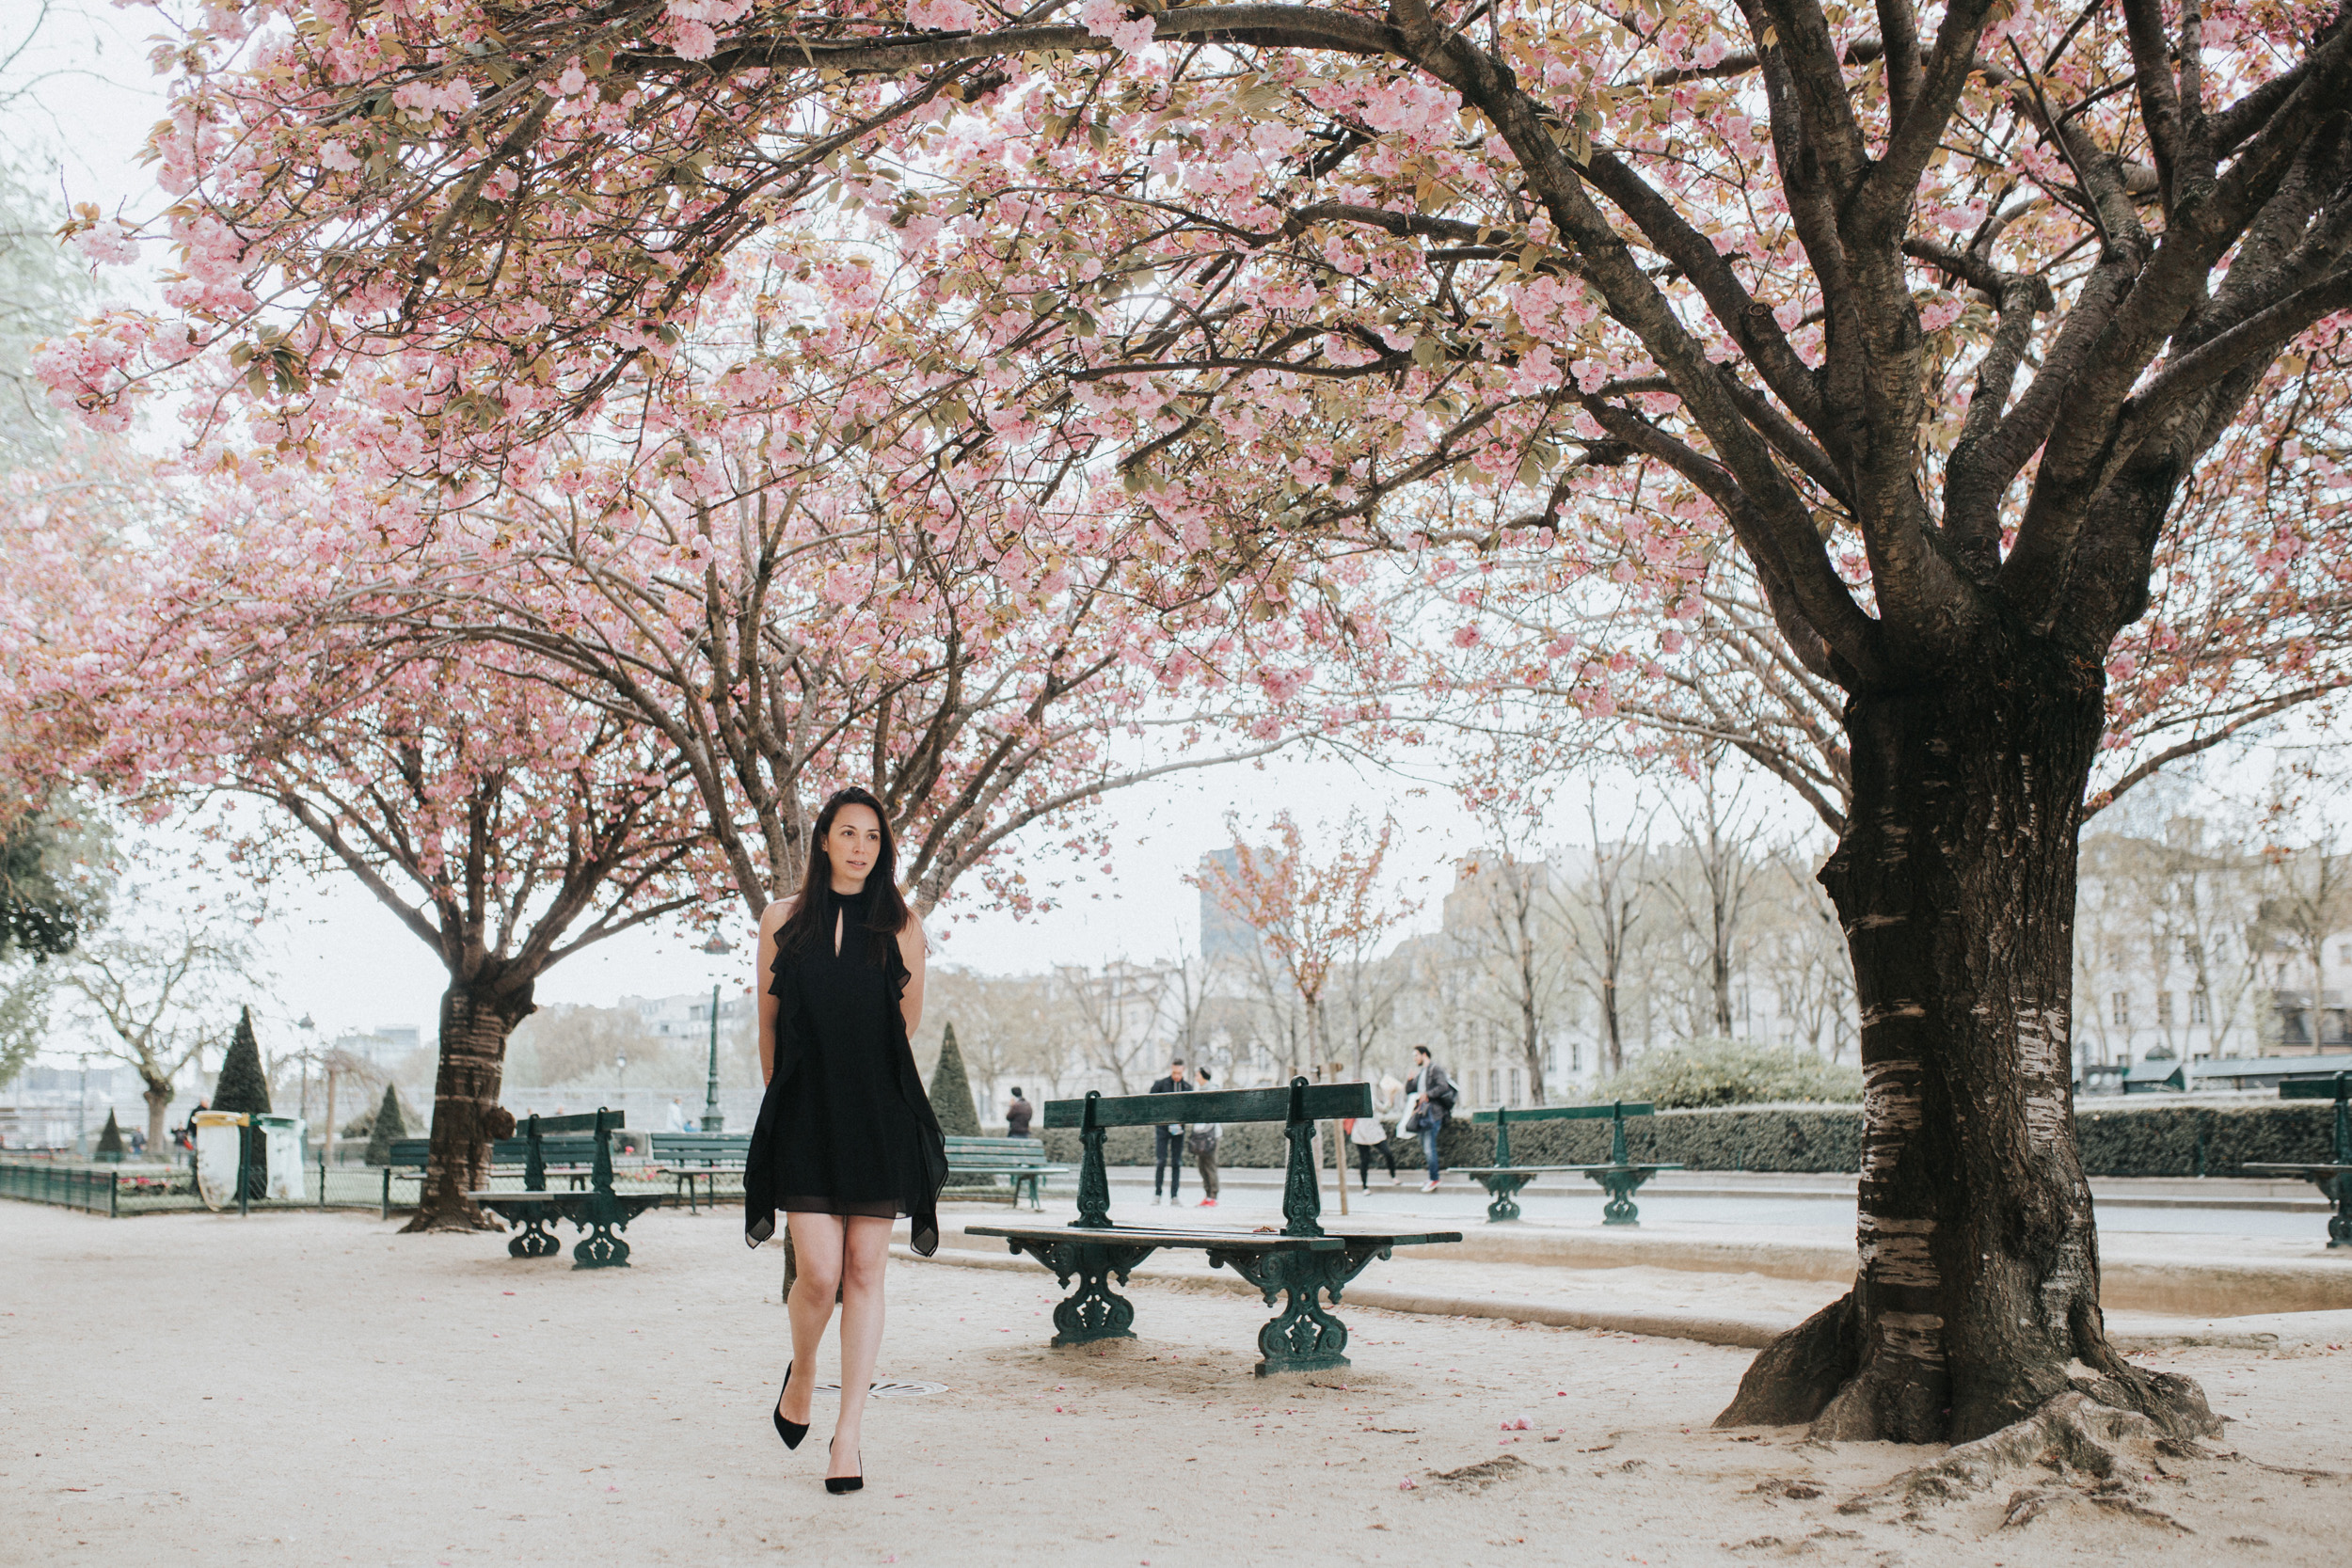 Spring portrait of Rebecca Plotnick founder of Every Day Parisian blog in front of cherry blossom trees captured by Paris Photographer Federico and Anastasia Guendel IheartParisFr TheFlyingPoodle